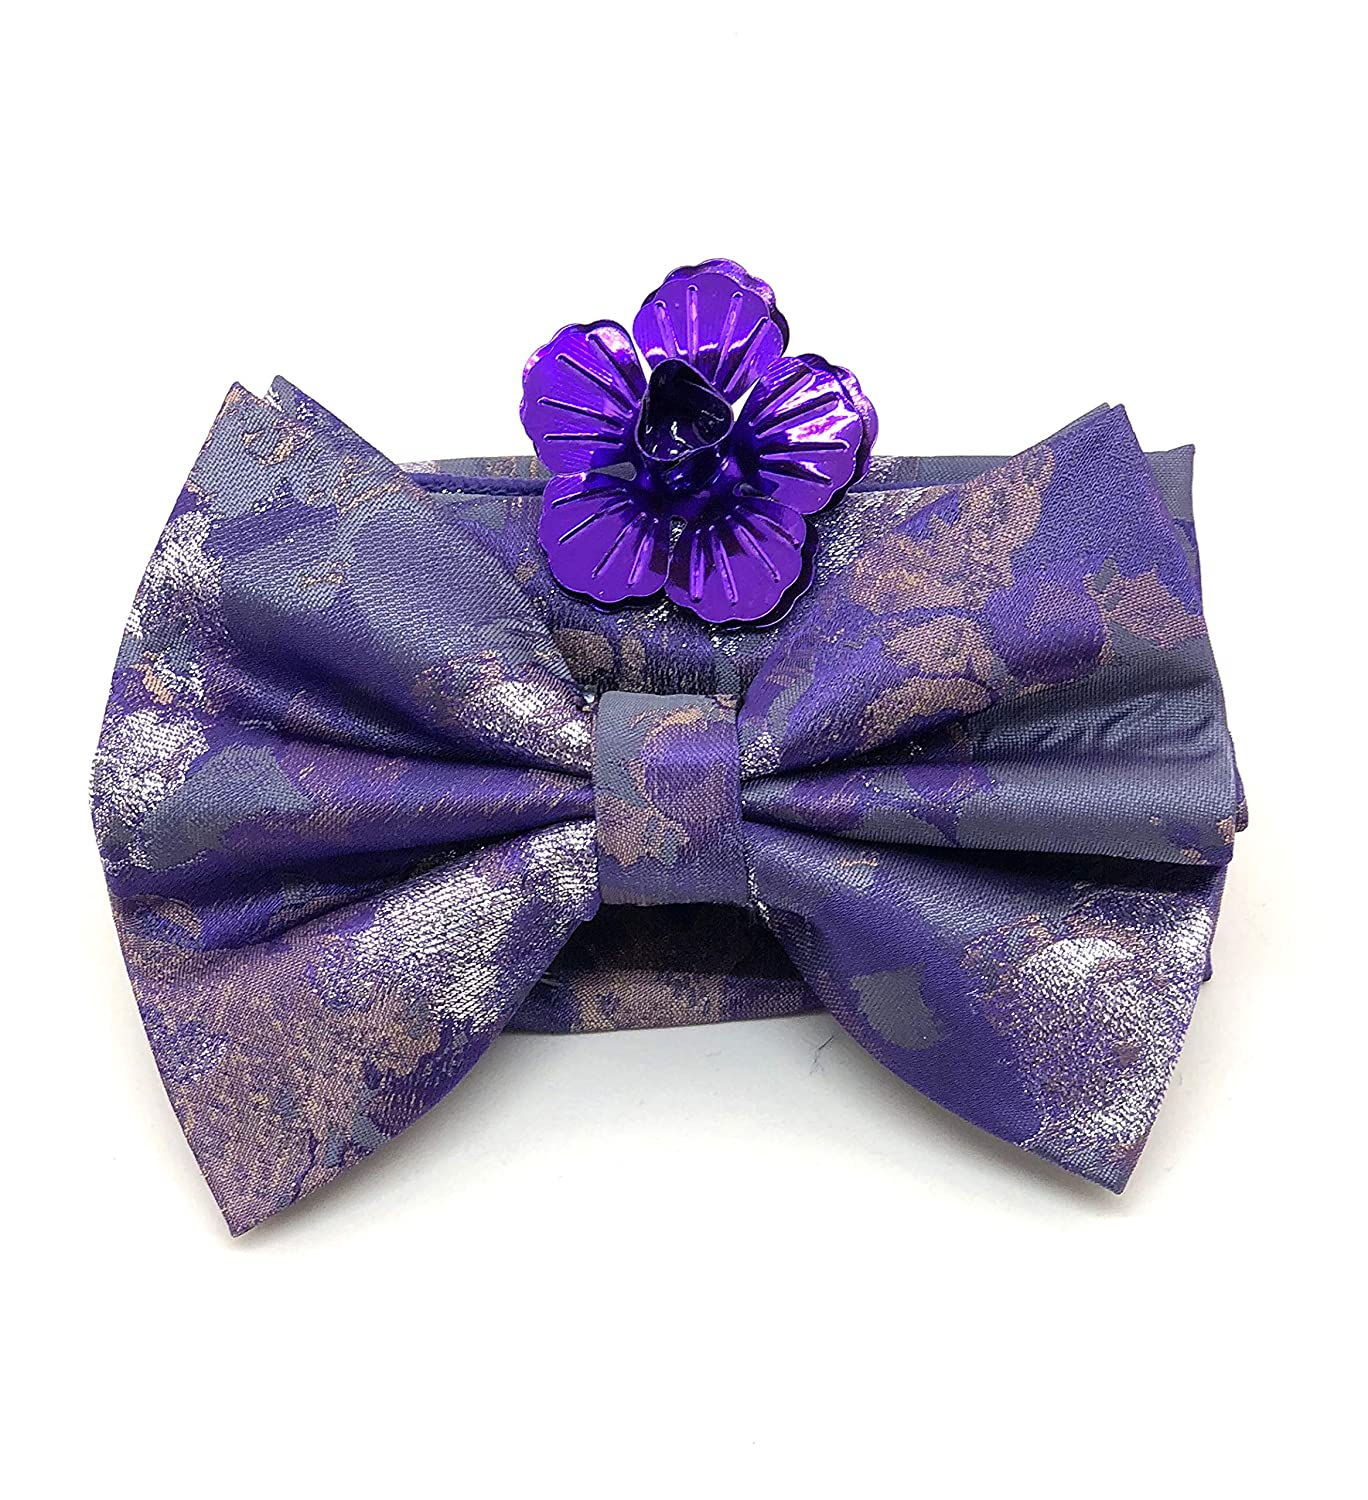 Big Bow Tie with Hankie and Metallic Flower Lapel Purple